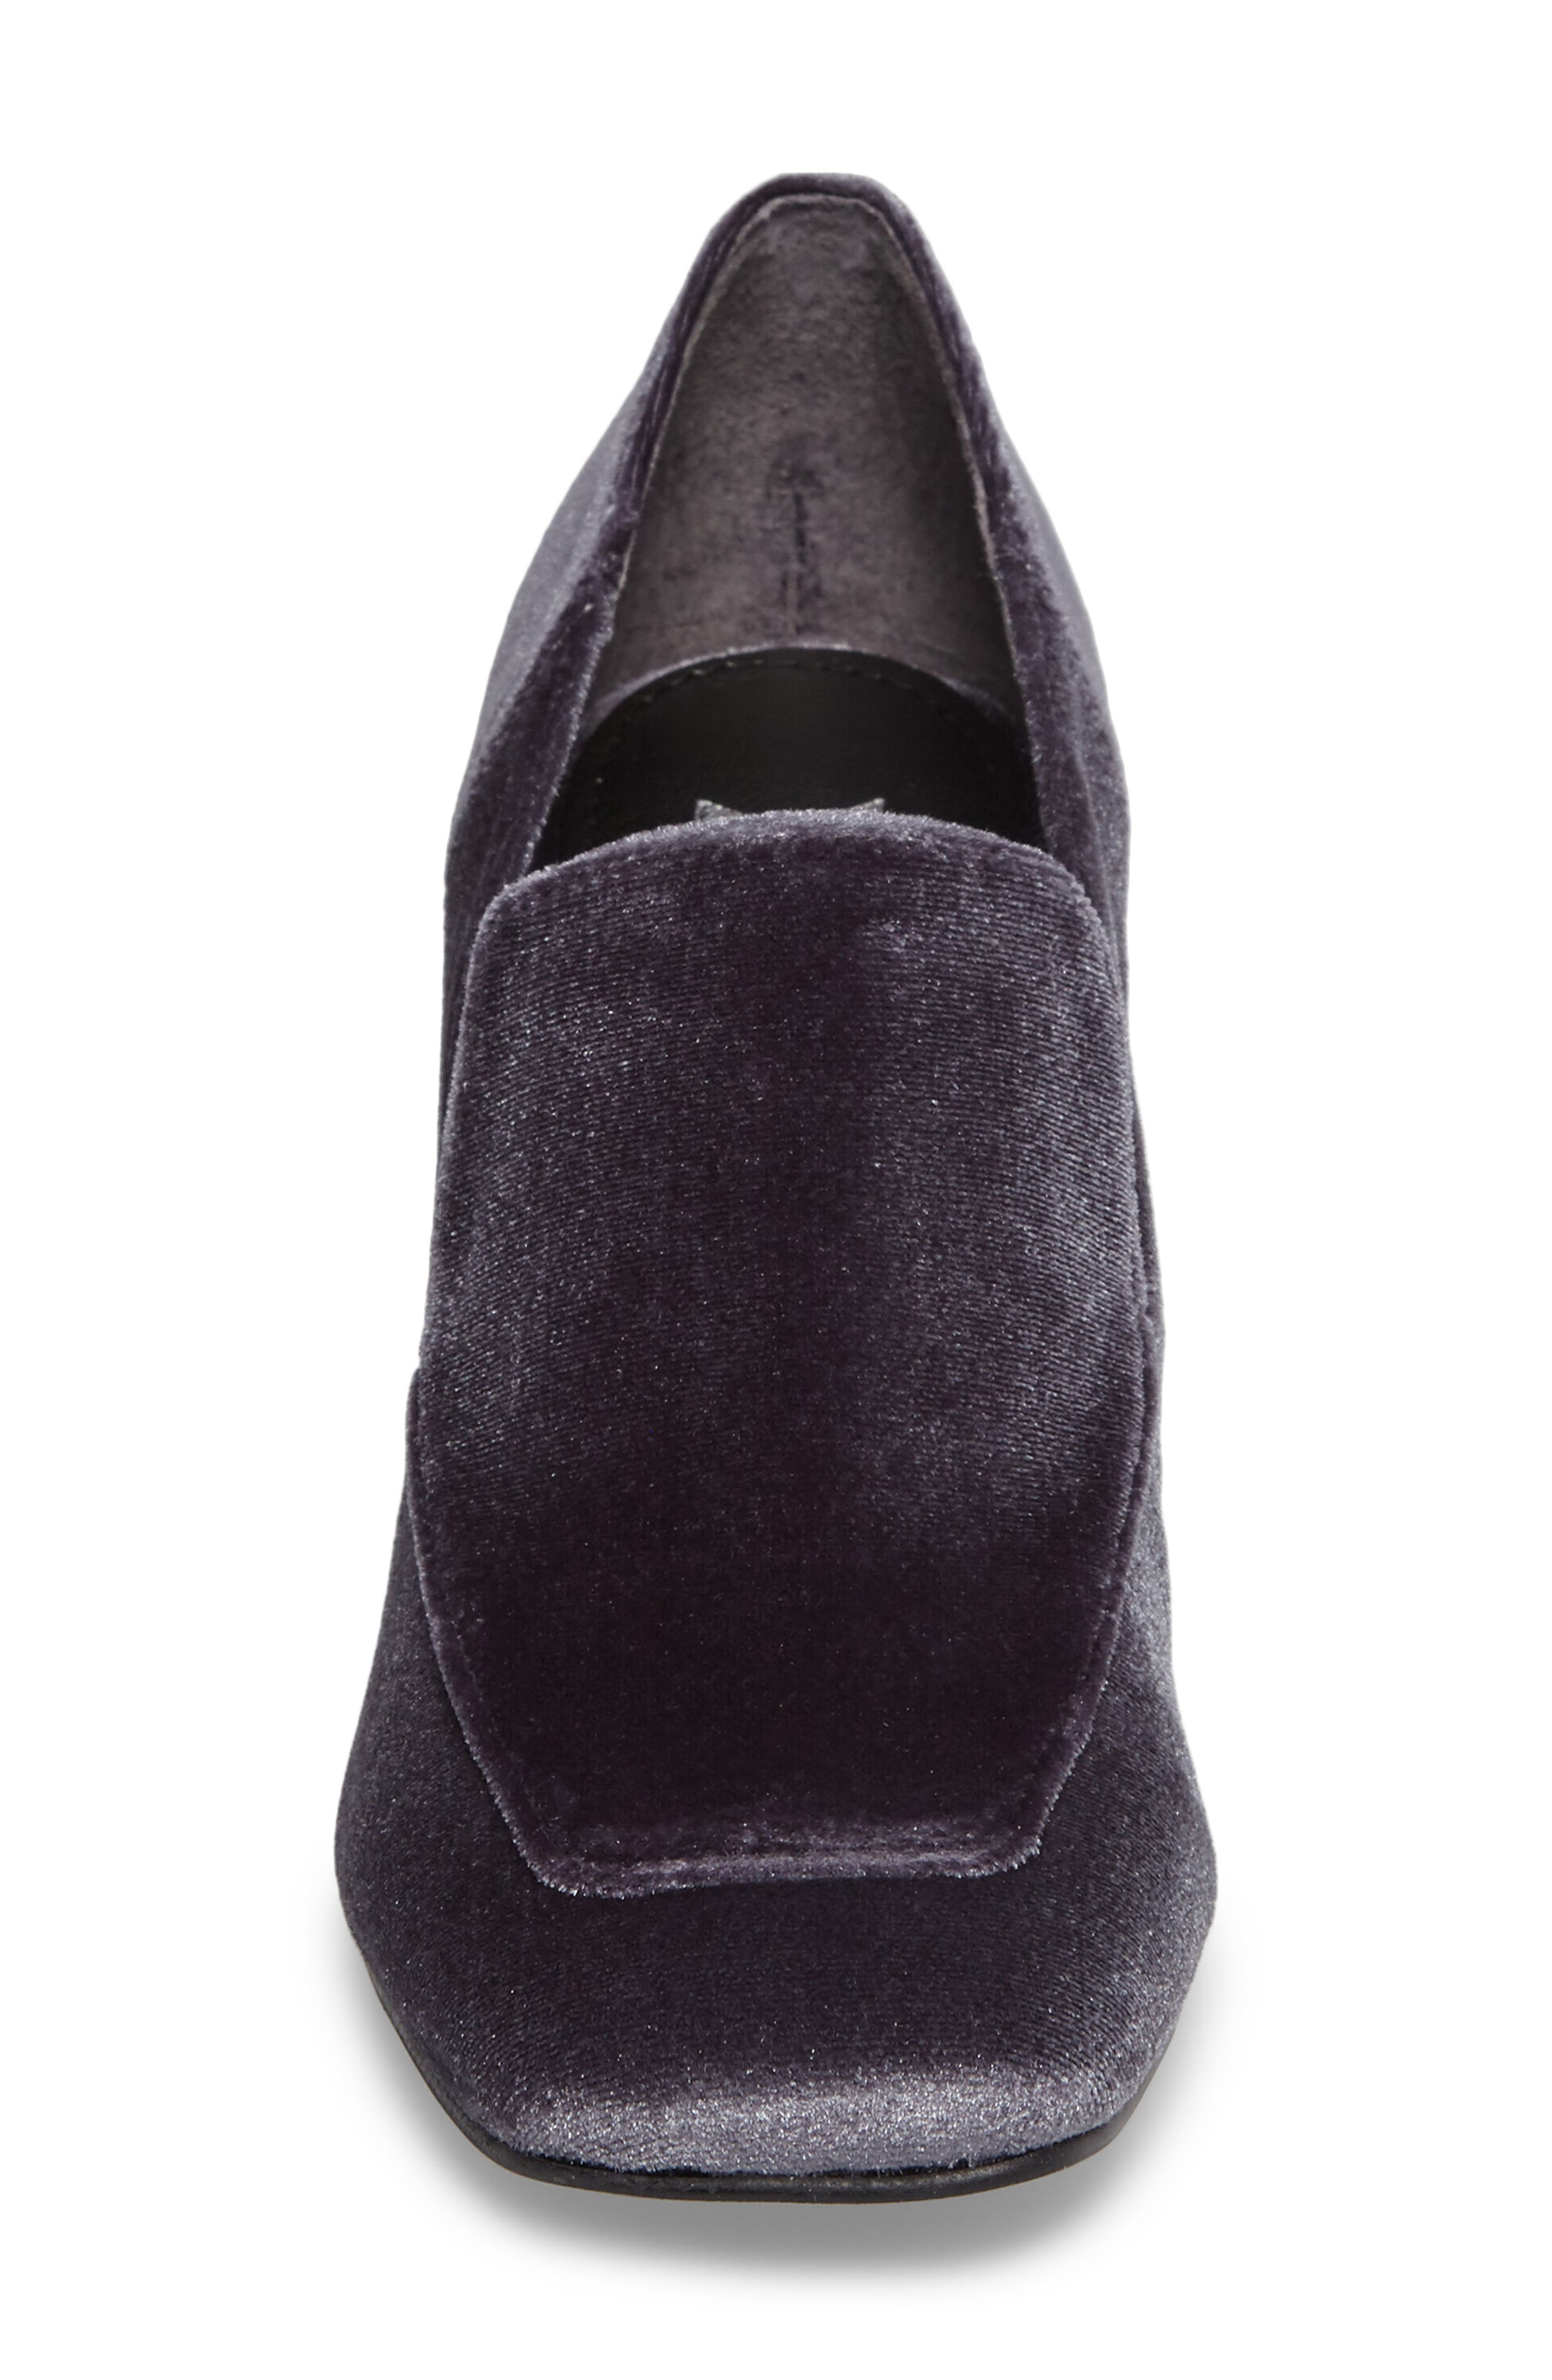 Marlo Loafer Pump,                             Alternate thumbnail 18, color,